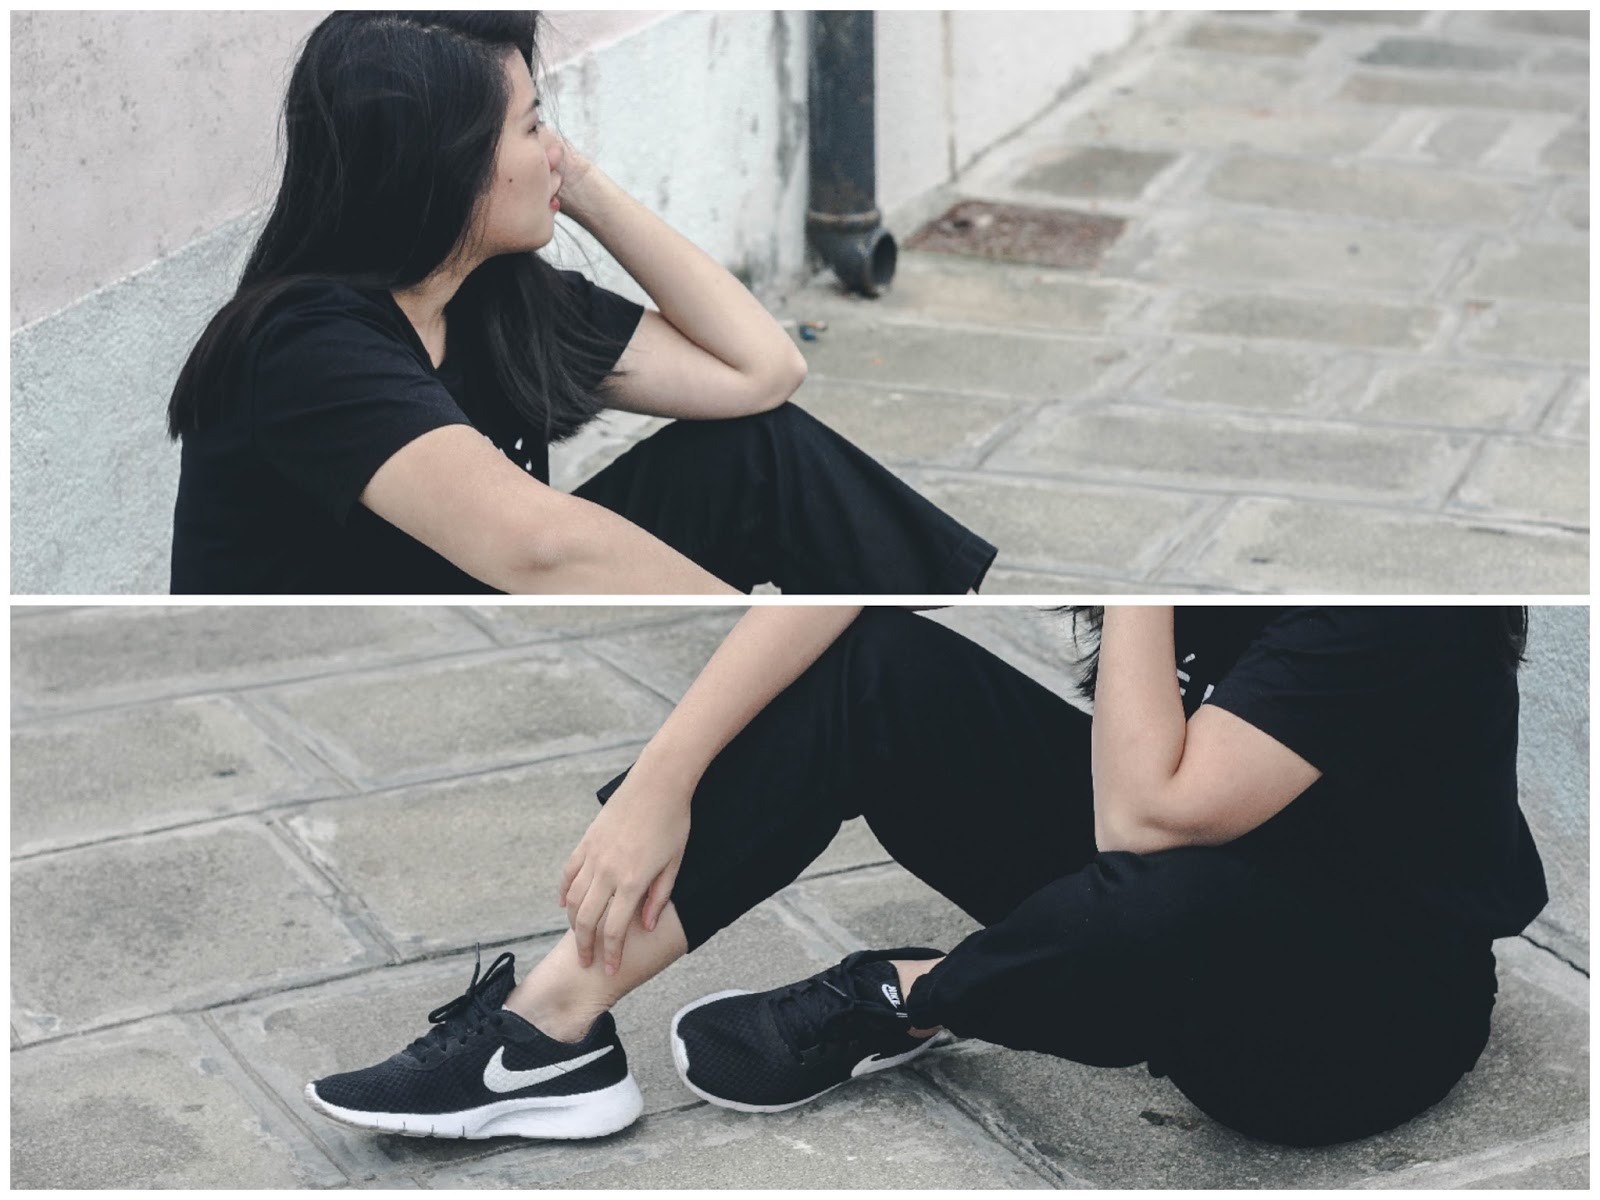 singapore blogger stylist nike street wear look book monotone fashion life style travel photography